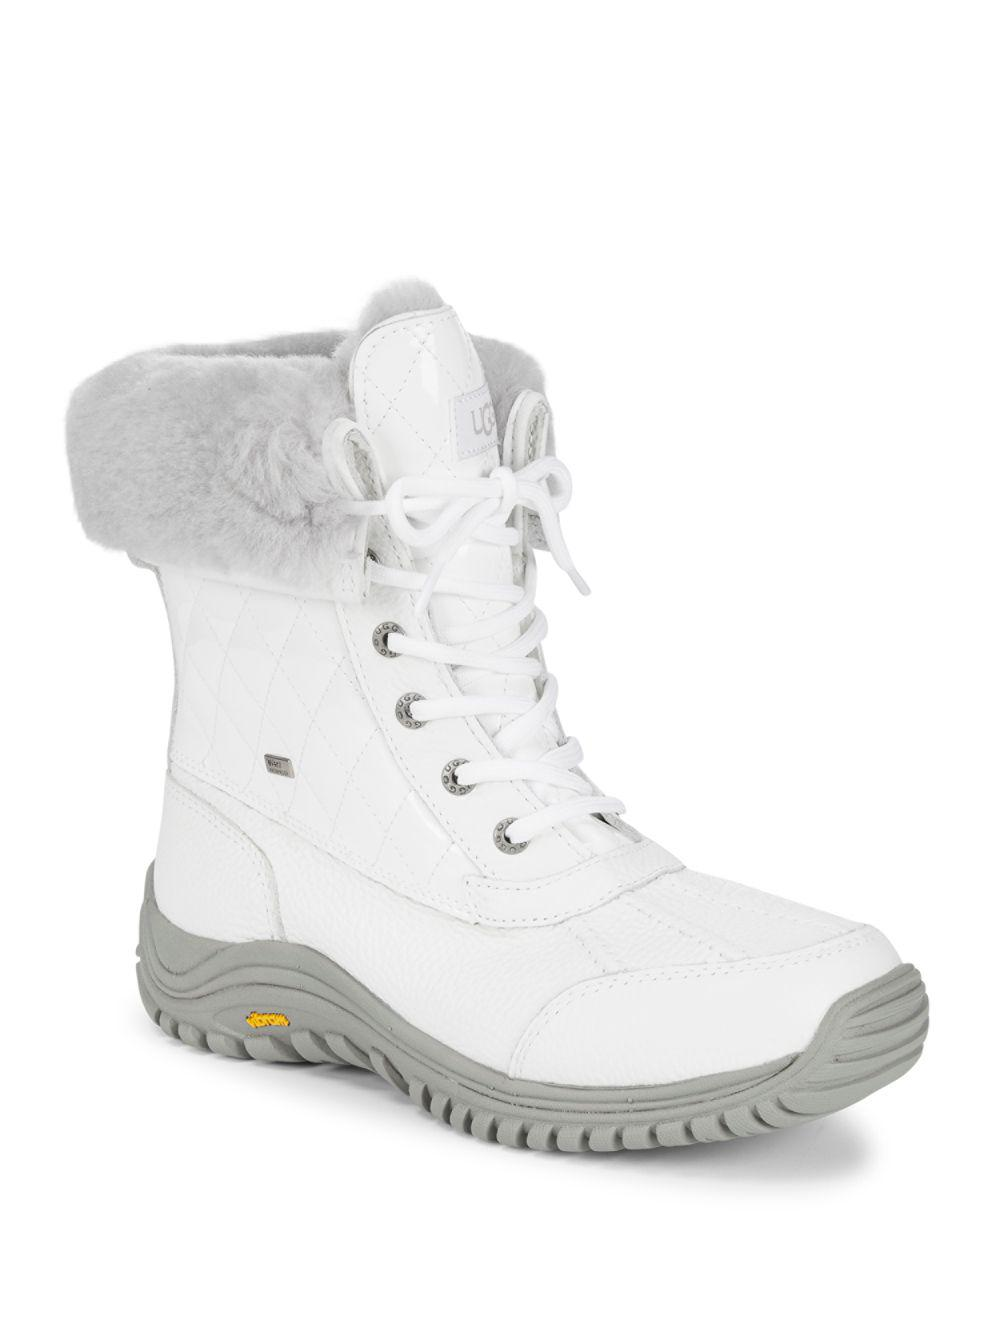 83289633f3d where can i buy white ugg winter boots 1f2e1 53a6f